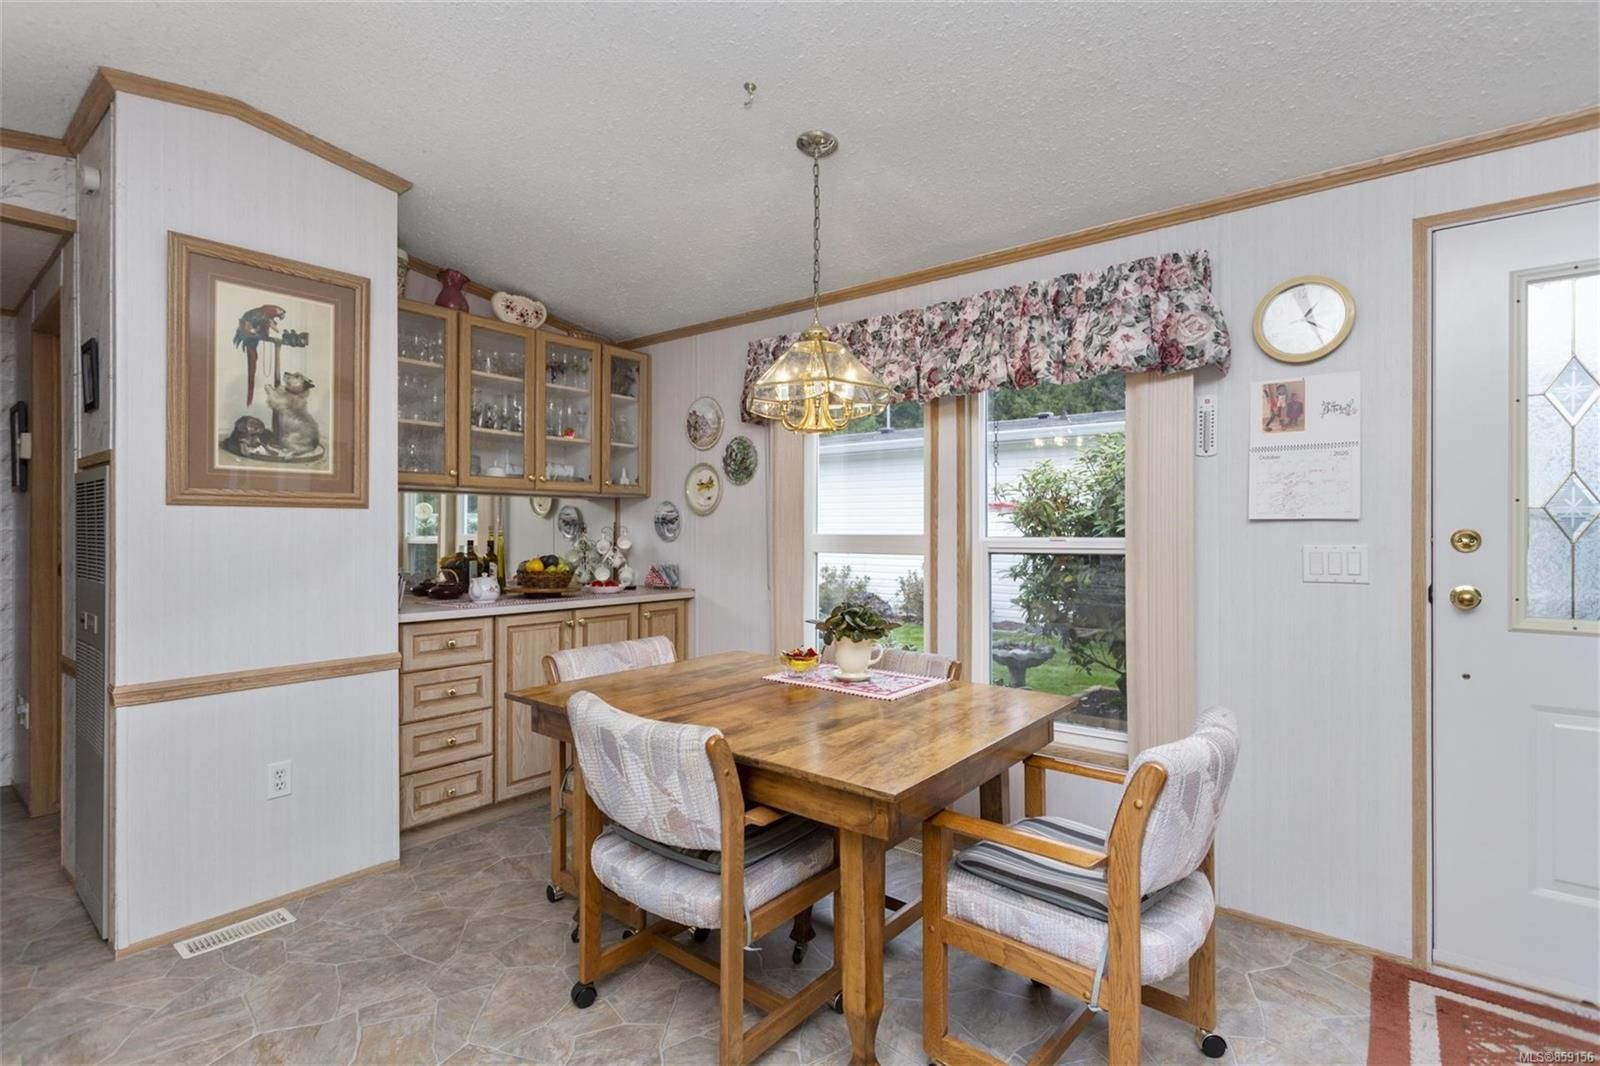 Photo 3: Photos: 1059 Collier Cres in : Na University District Manufactured Home for sale (Nanaimo)  : MLS®# 859156